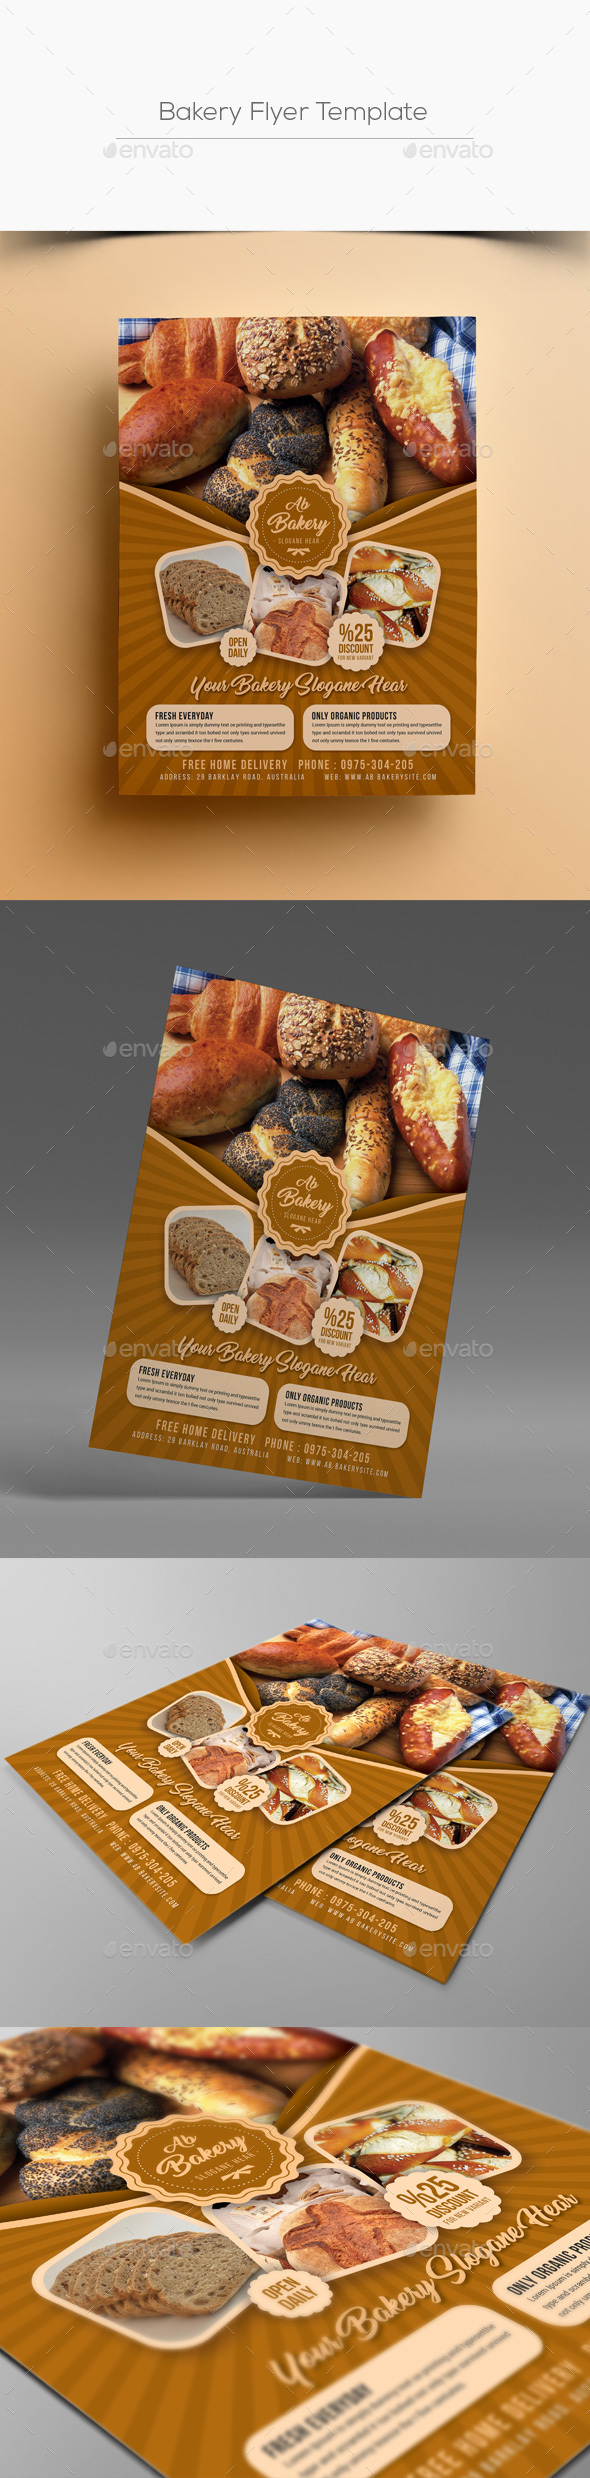 Bakery Flyer Template By Designsoul GraphicRiver - Bakery brochure template free